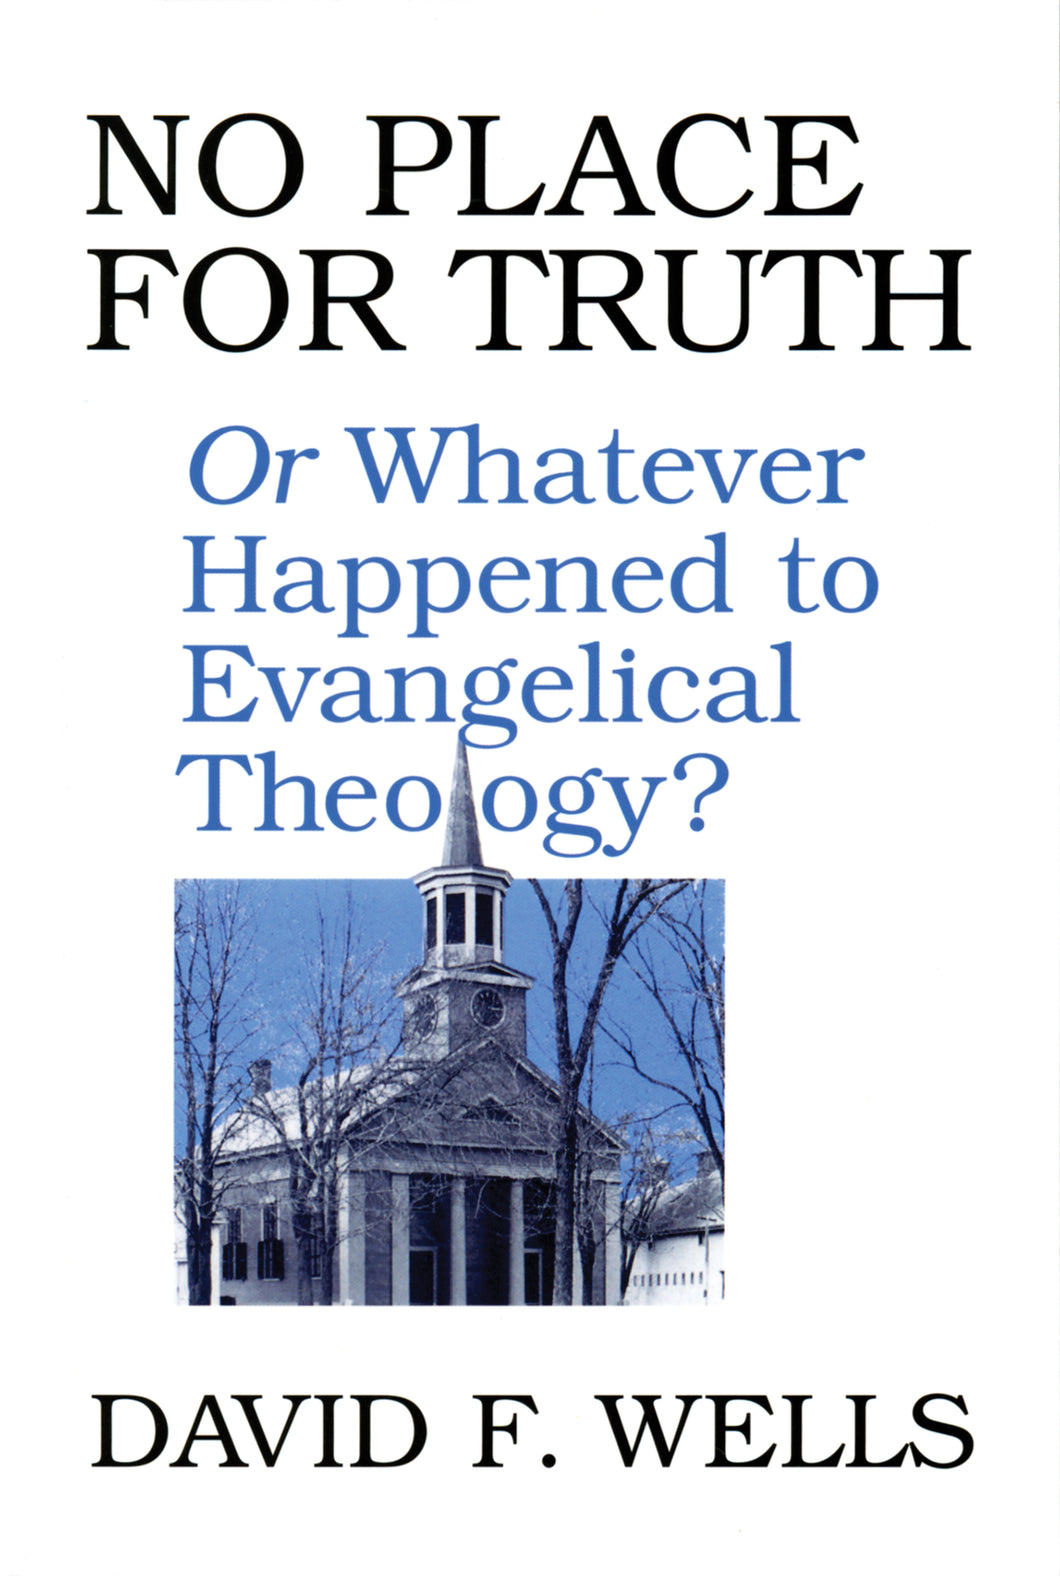 No Place For Truth or Whatever Happened to Evangelical Theology? — Paperback